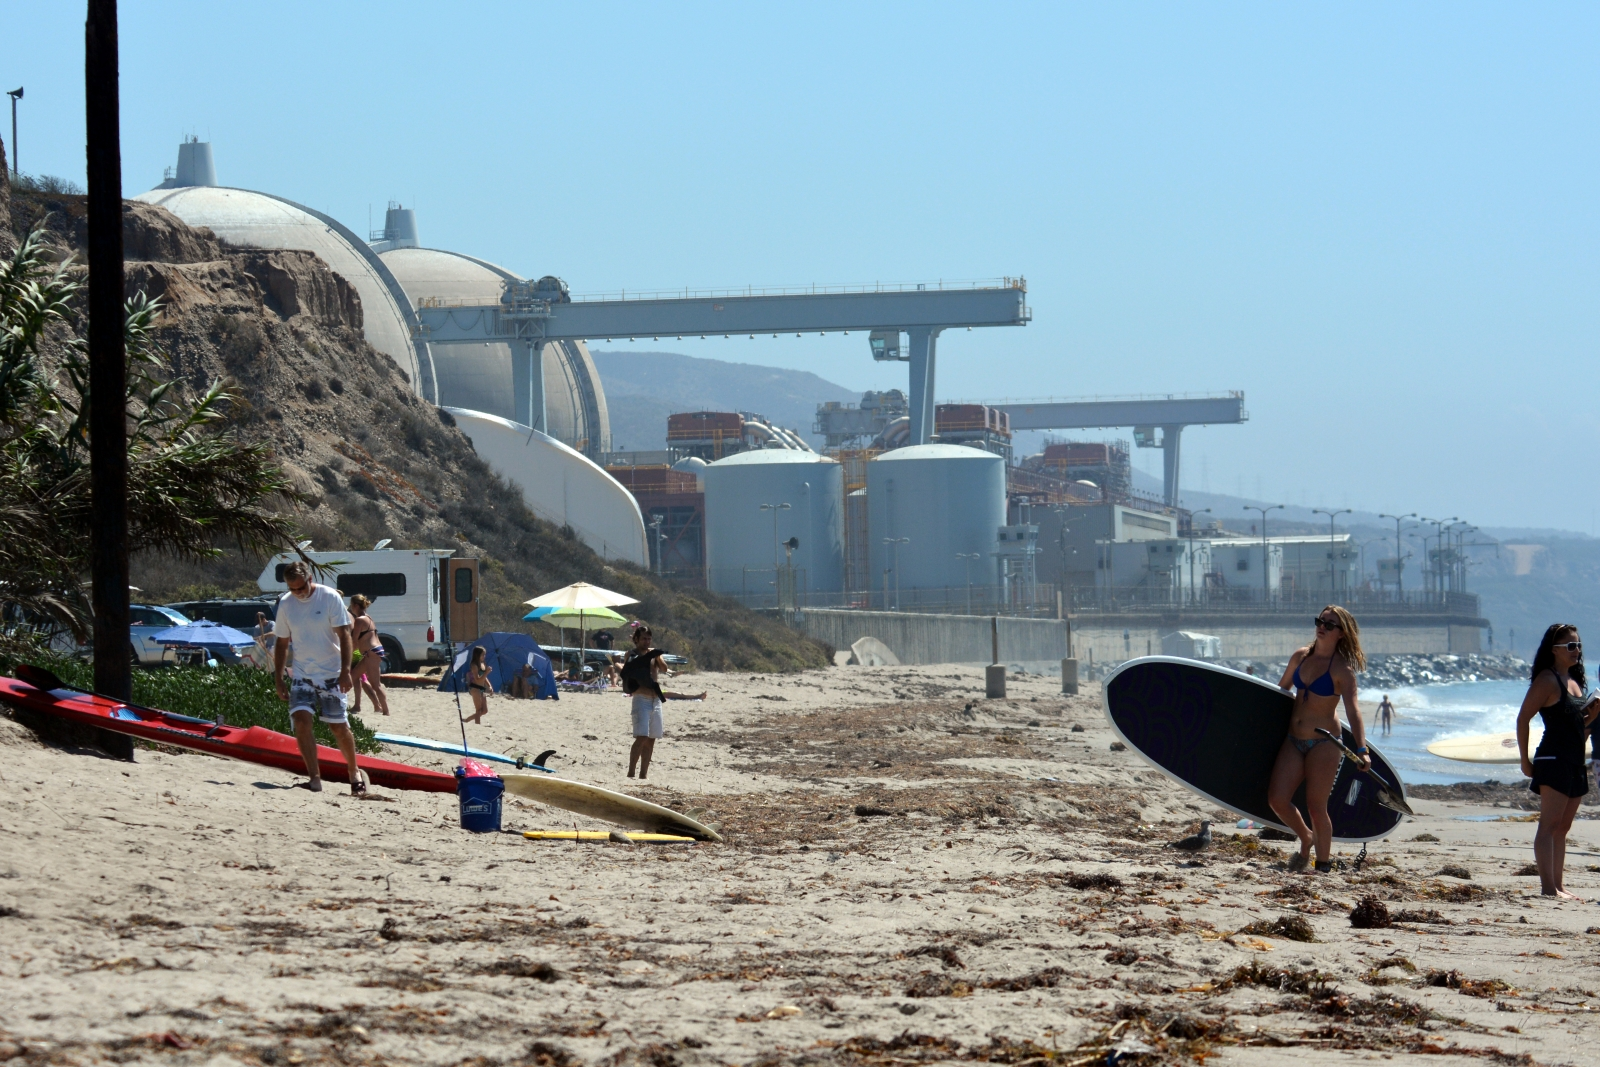 San Onofre Nuclear Power Plant To Cost 4 Bn To Dismantle